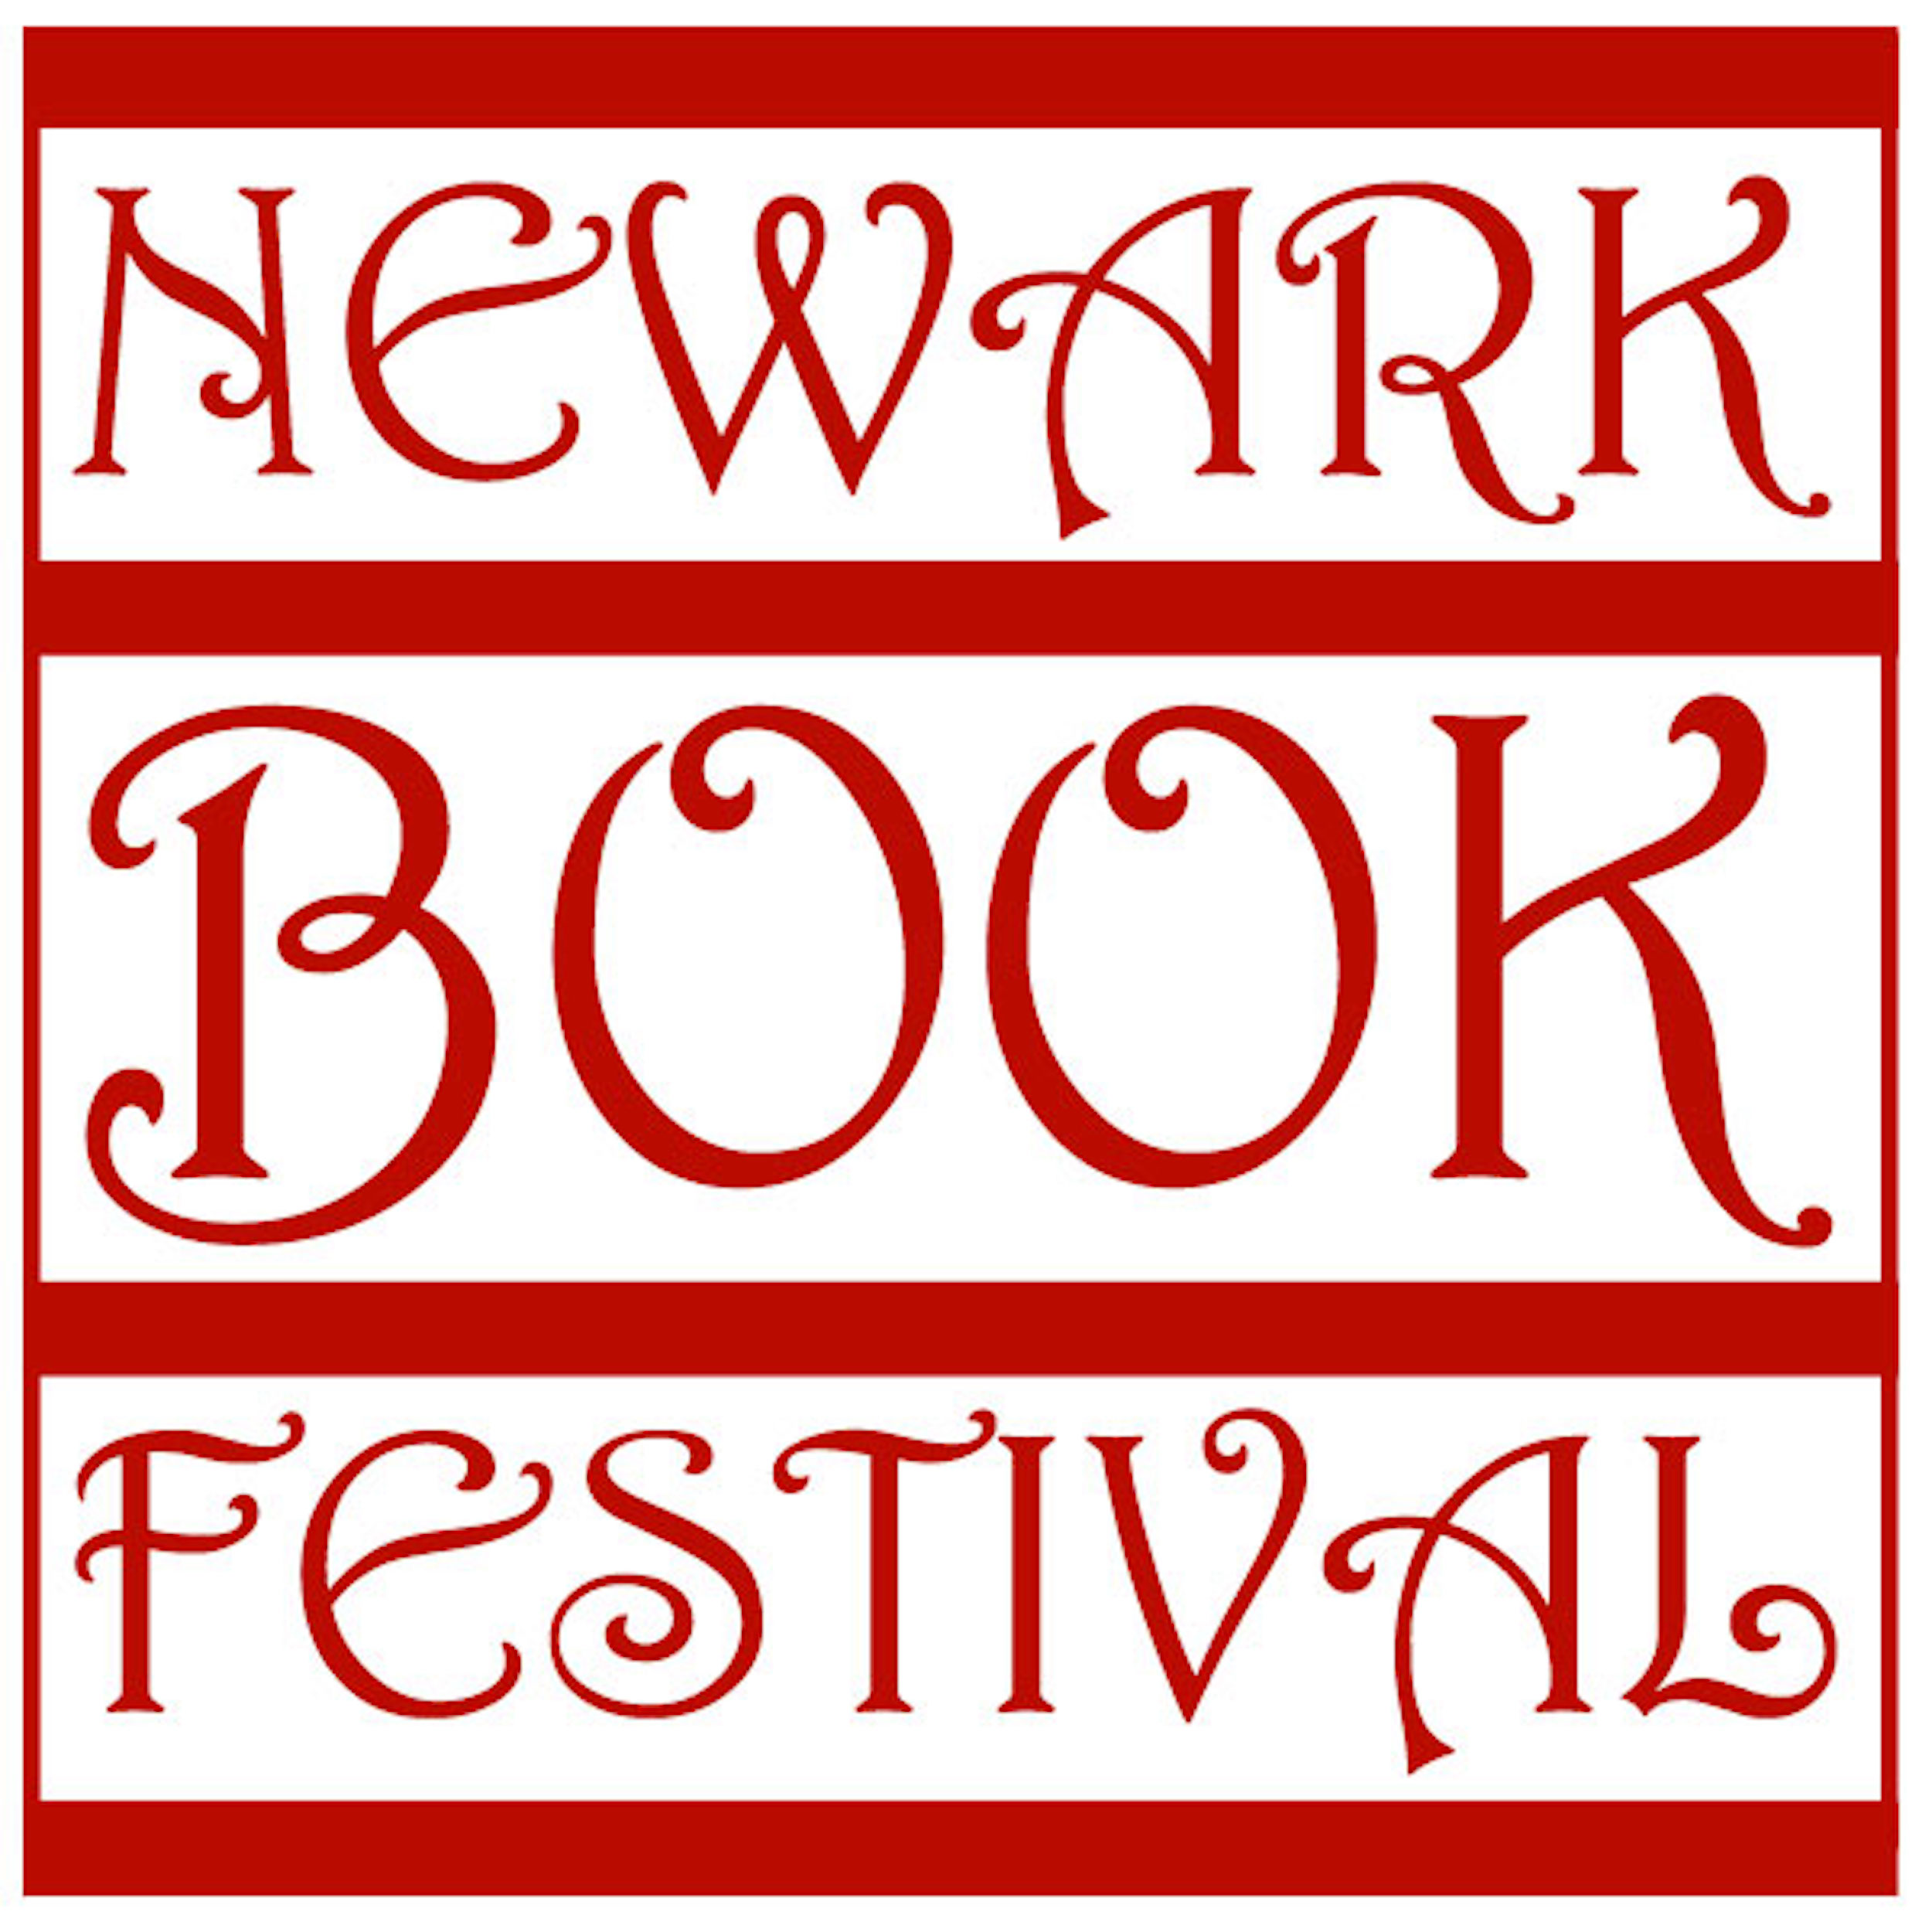 Newark Book Festival logo